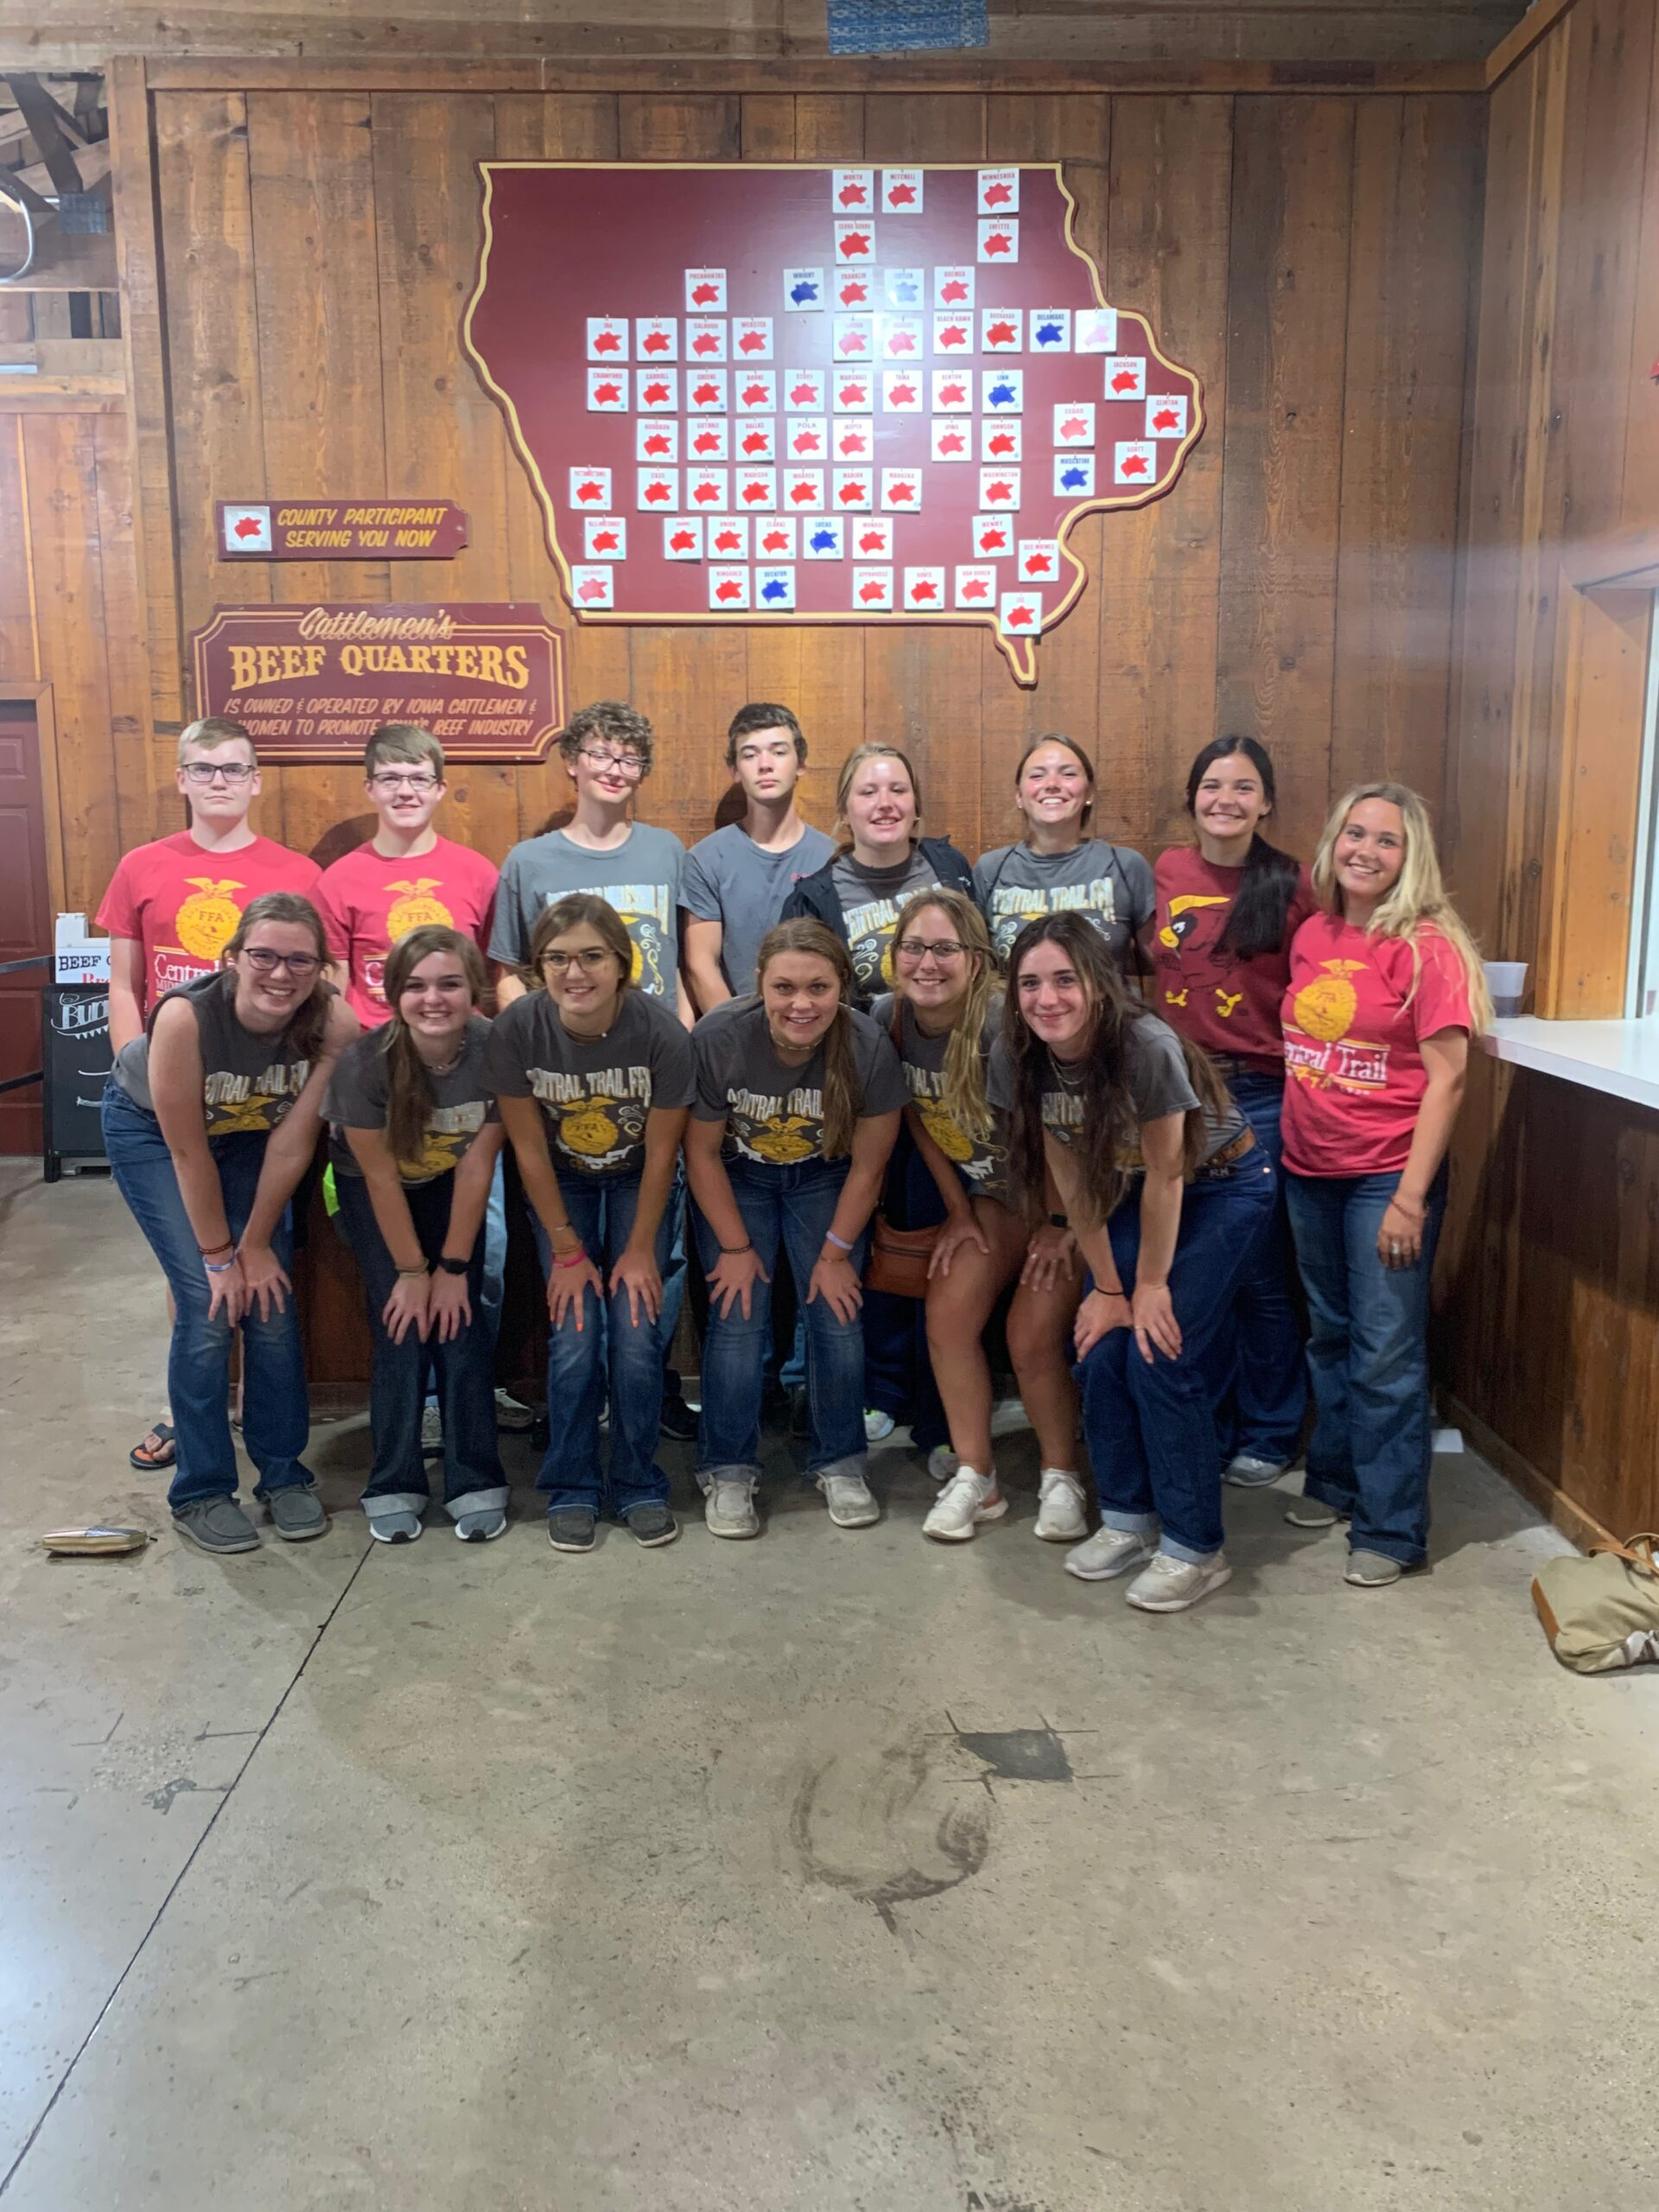 Central Trail FFA members pose at the Iowa State Fair Cattleman's Quarters